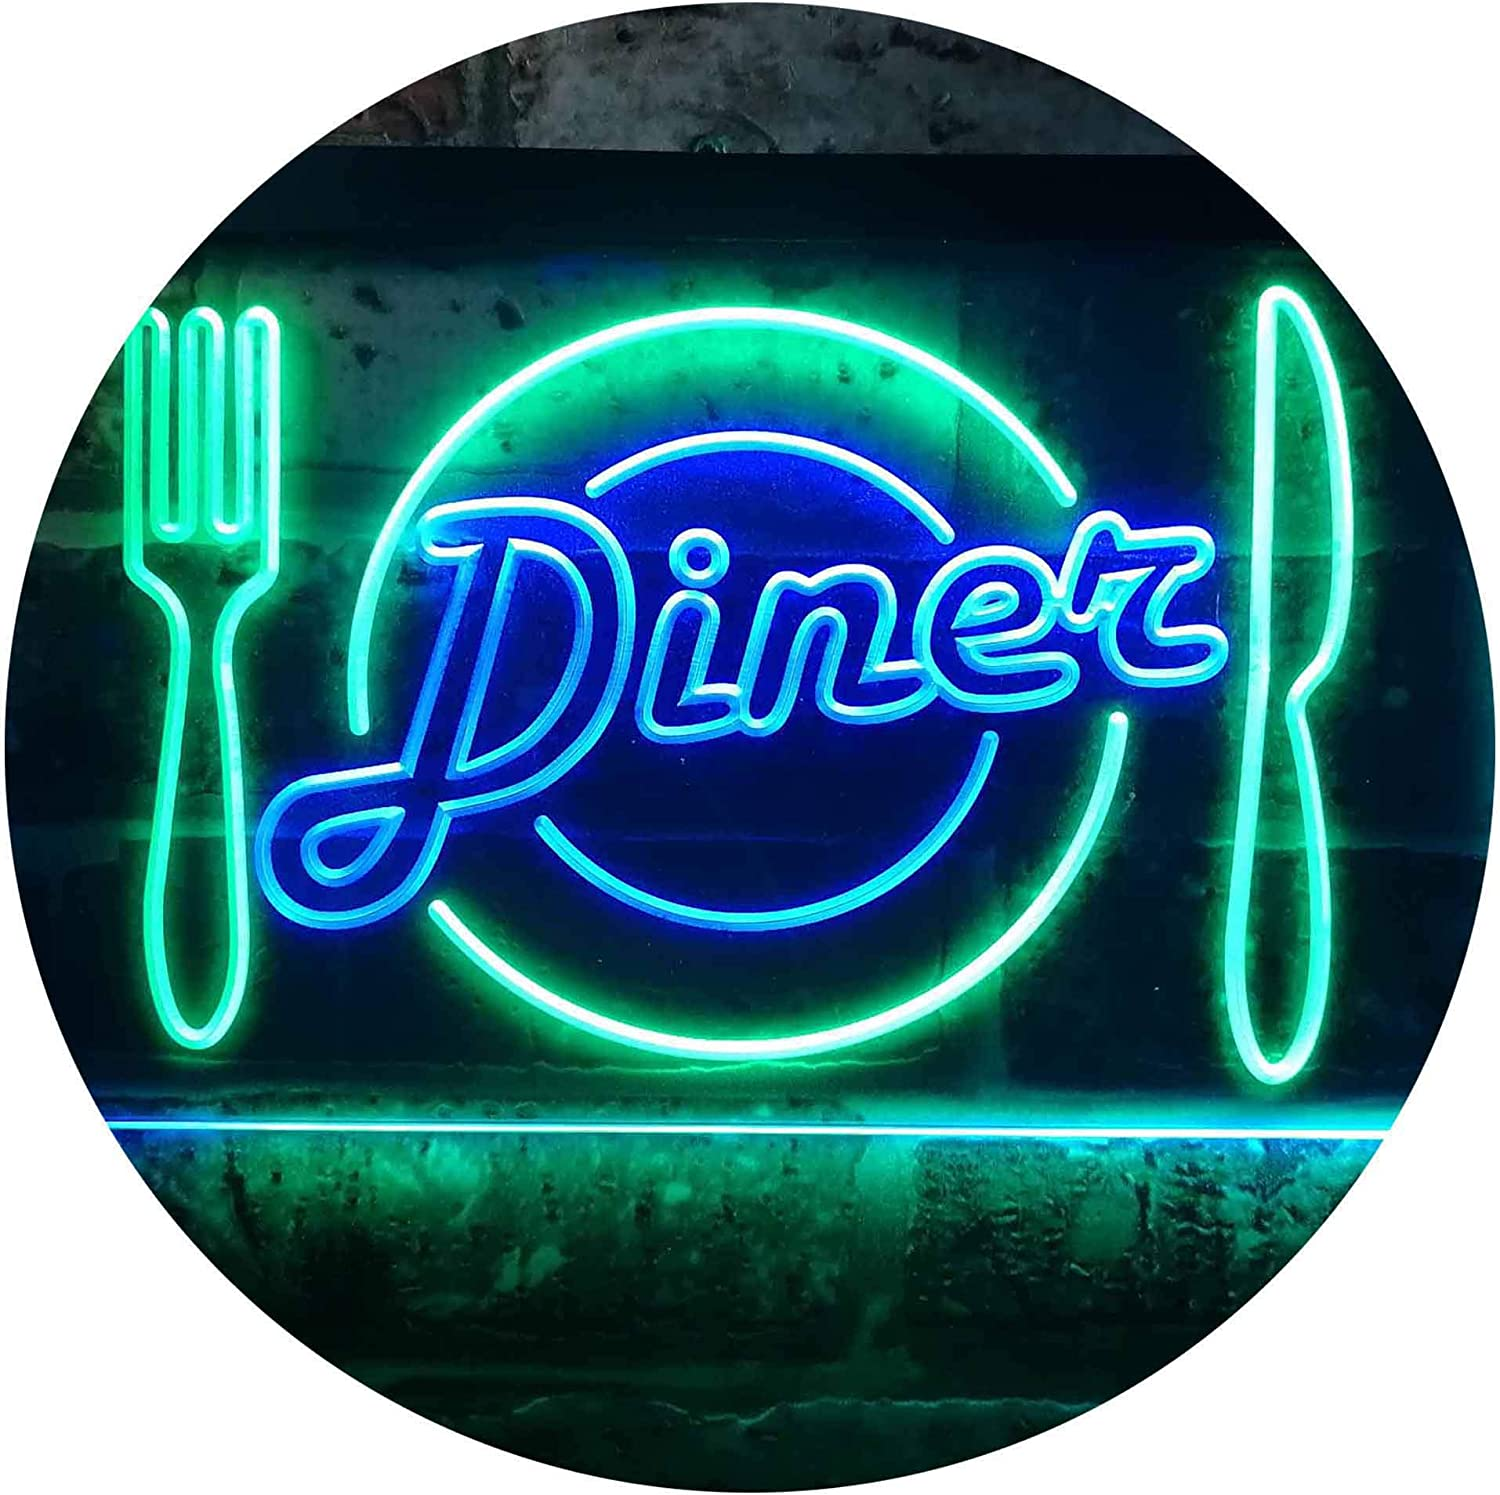 LED Neon Light Sign Cutlery Knives and Forks Sign Restaurant Waterproof